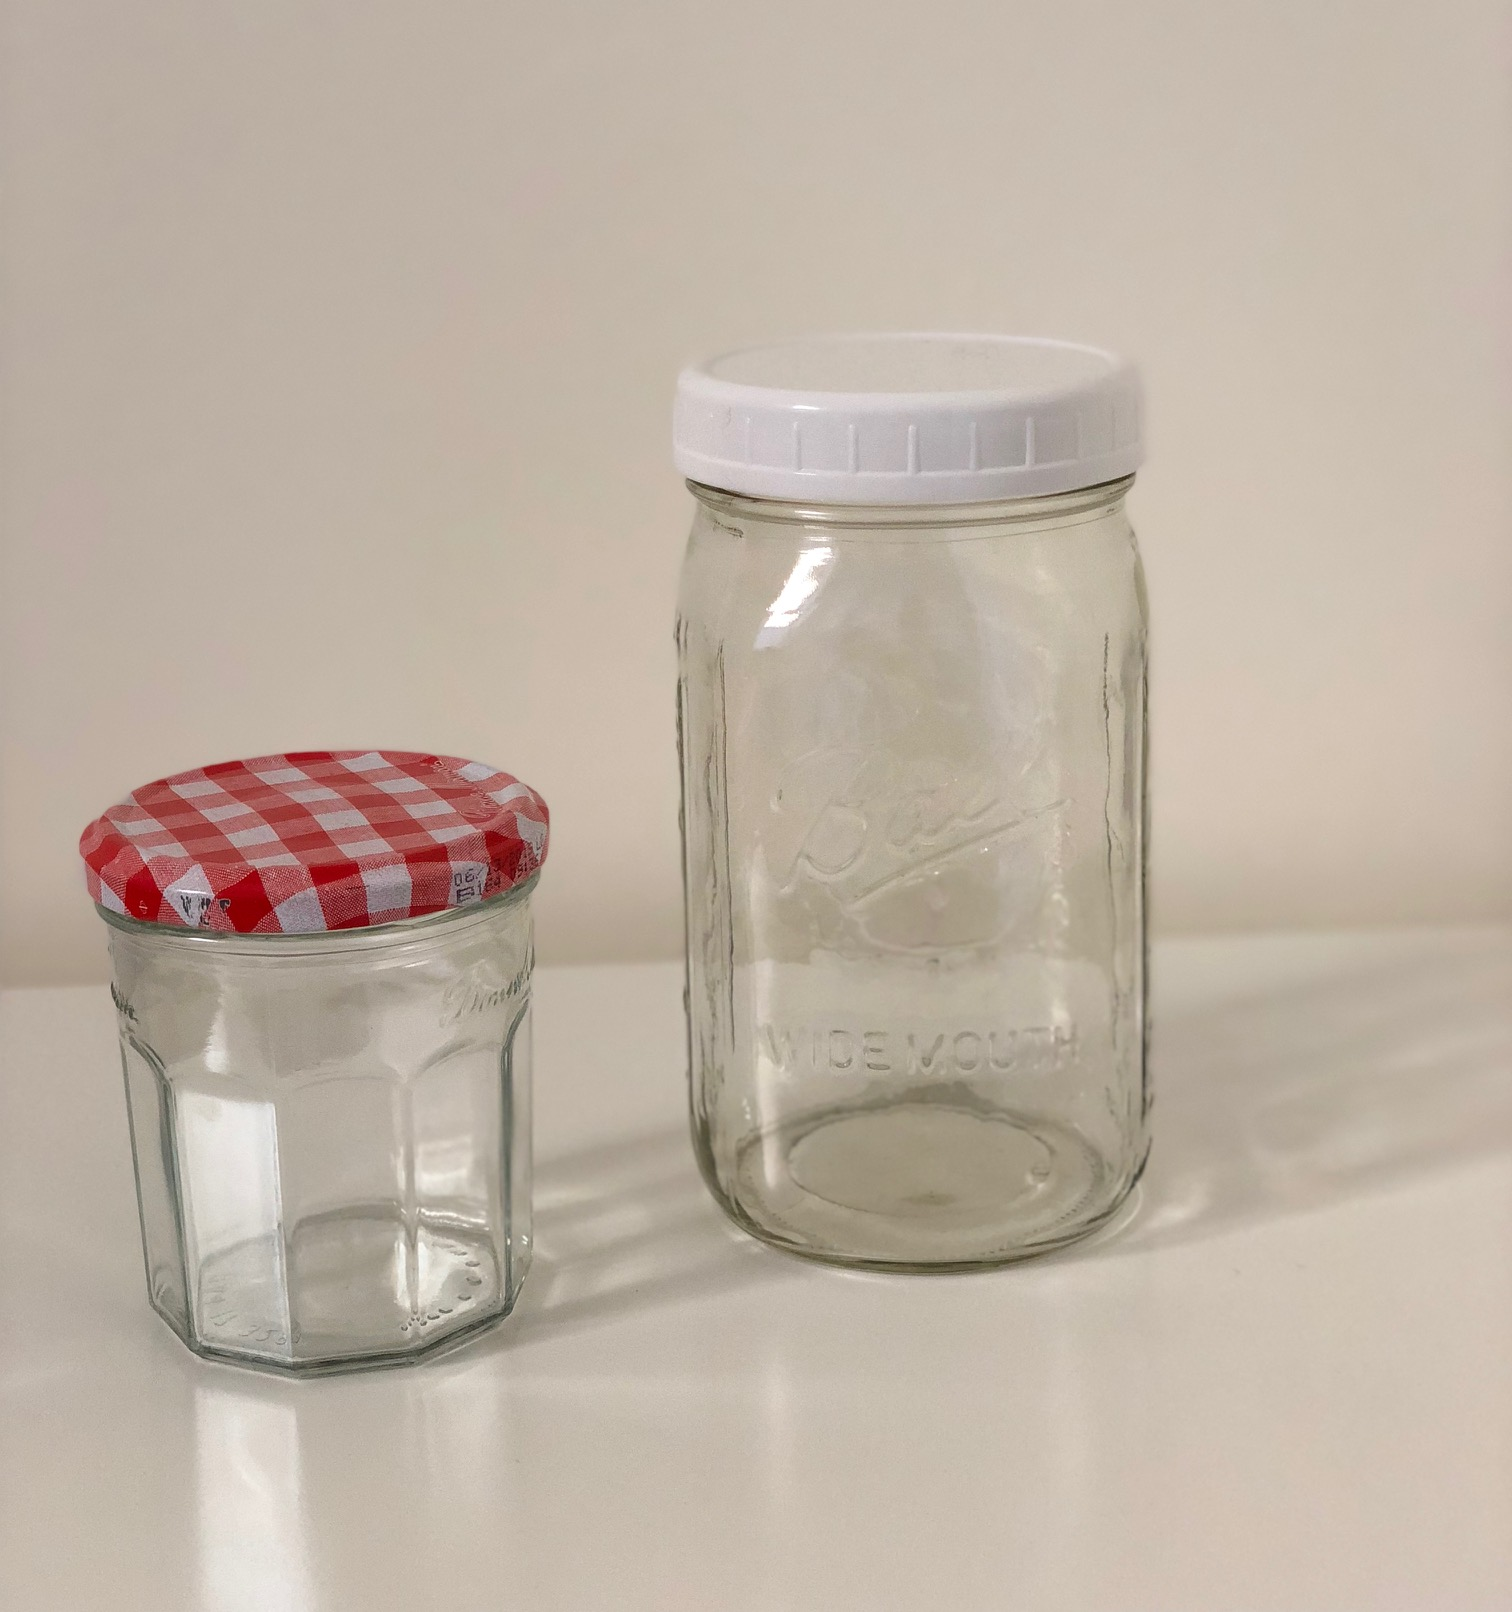 12. Glass Jars - Useful For: Keeping bulk dry goods safe from infestation, storing leftovers, holding your to-go beverage of choice.